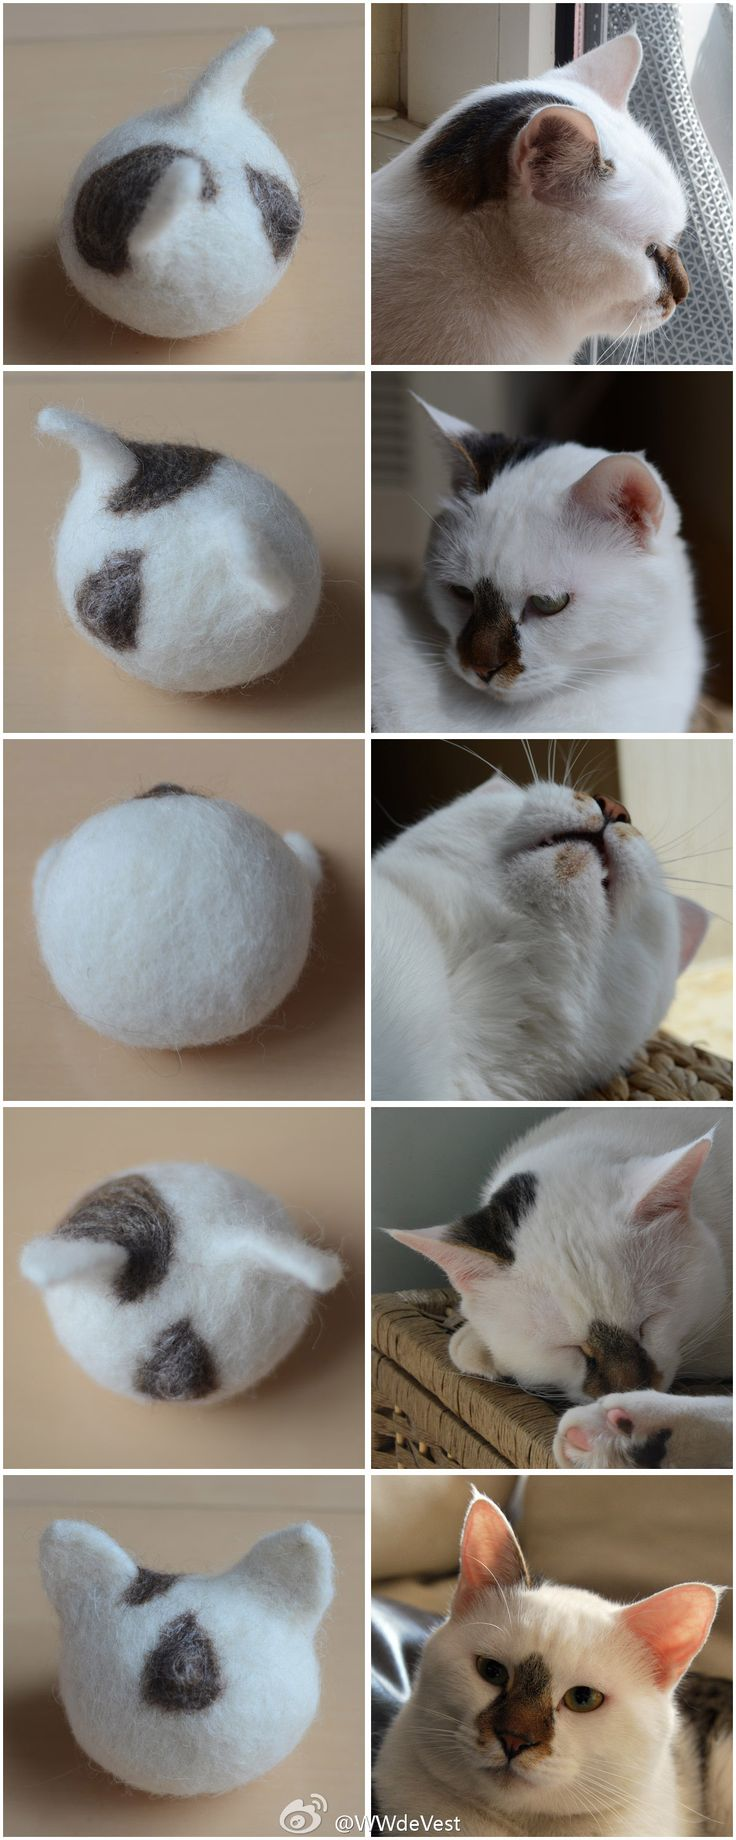 Cat face:  Next came Q-Tip and his action figure.